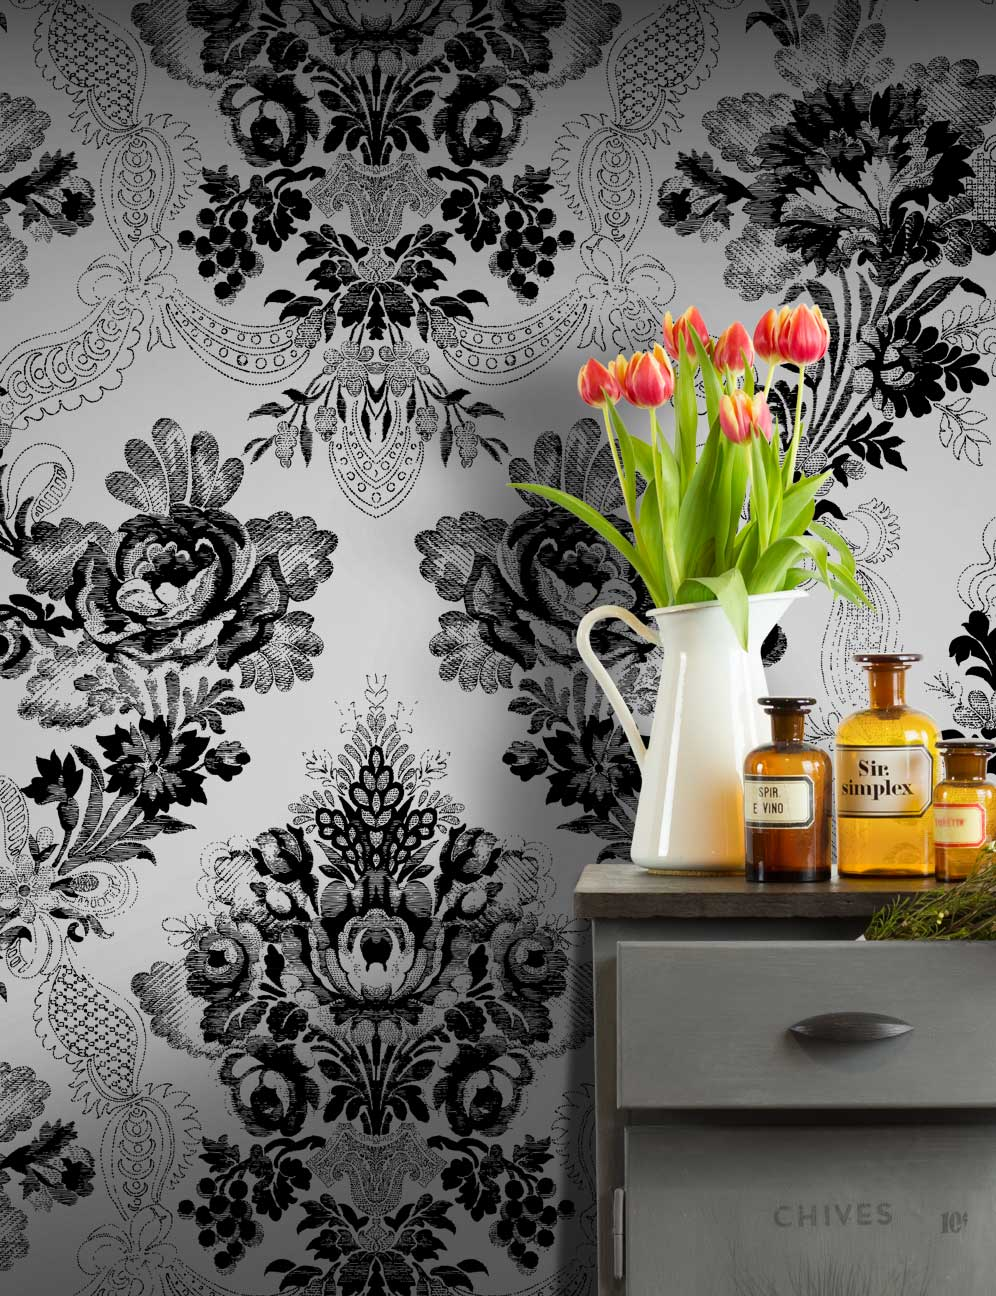 Black & White Vintage Damask Wallpaper